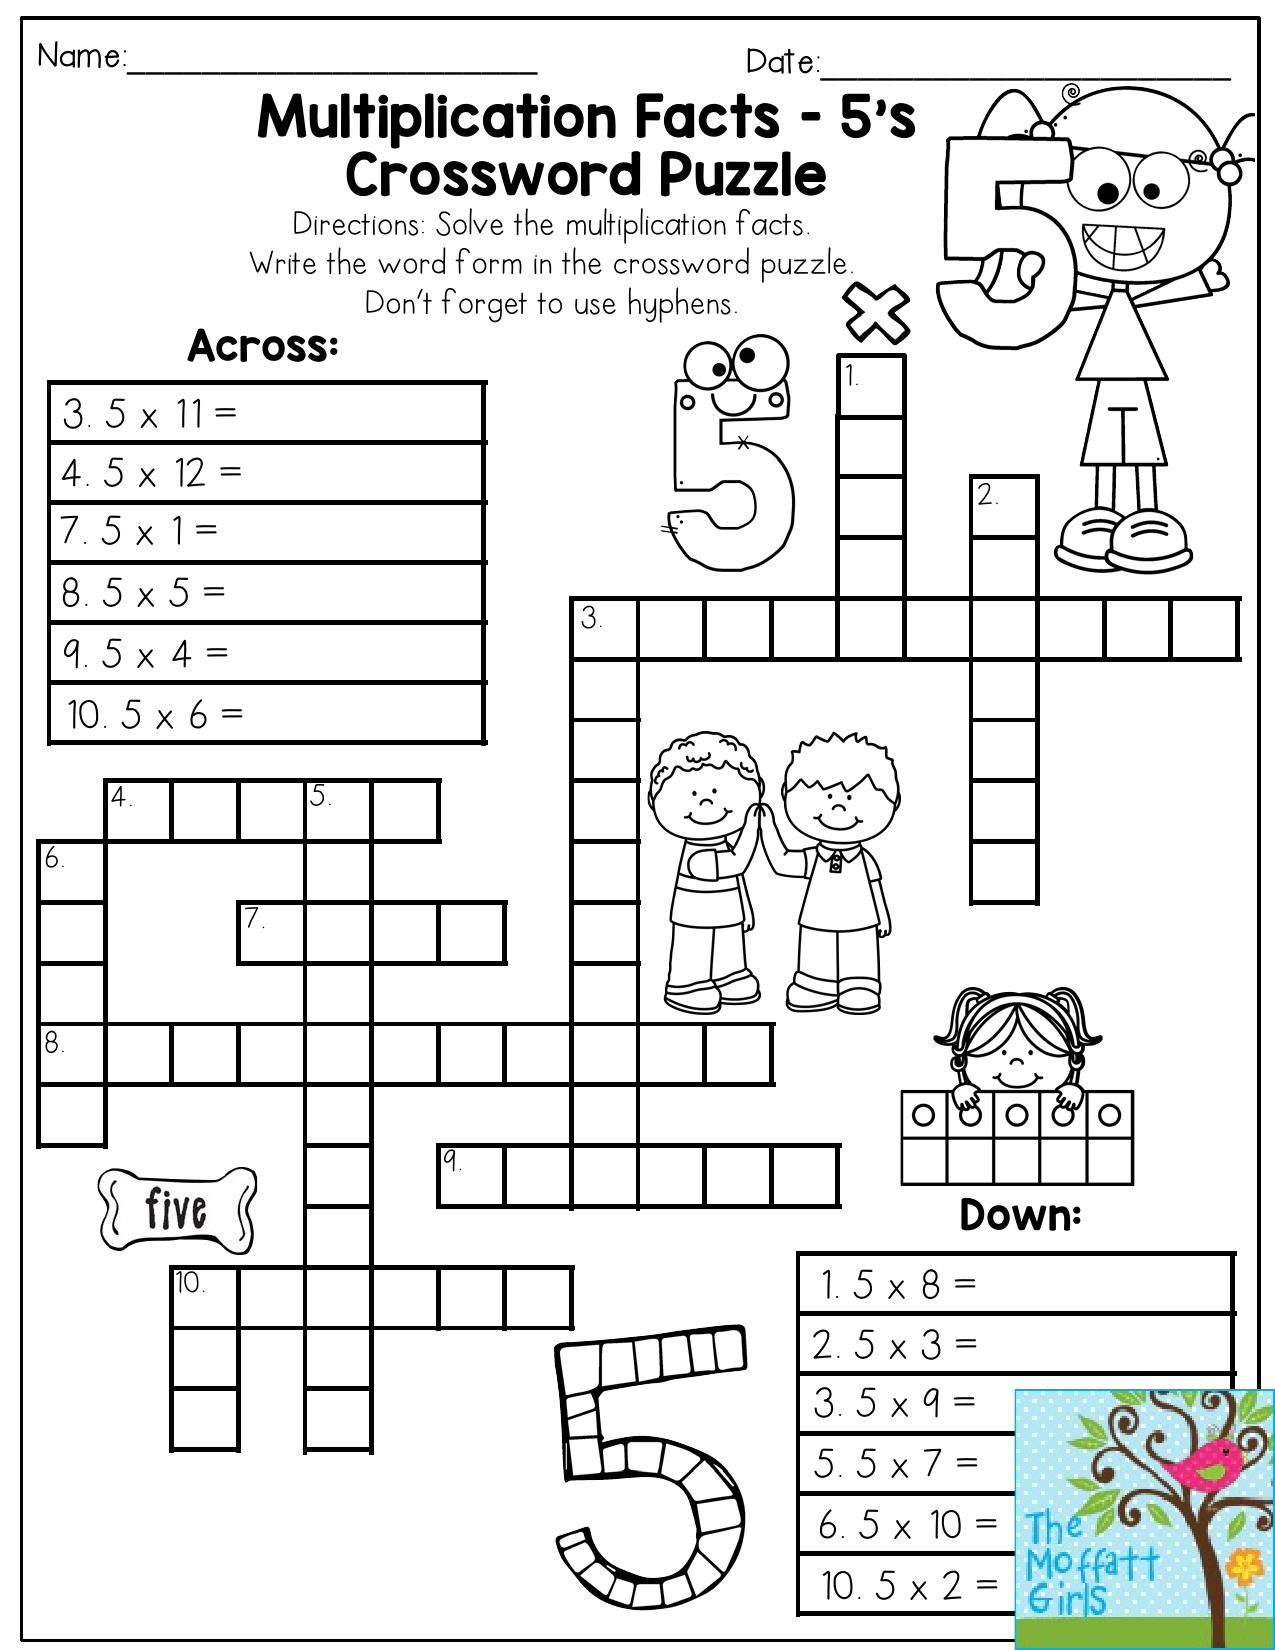 Multiplication Facts Crossword Puzzle- Third Grade Students Love - 5Th Grade Crossword Puzzles Printable